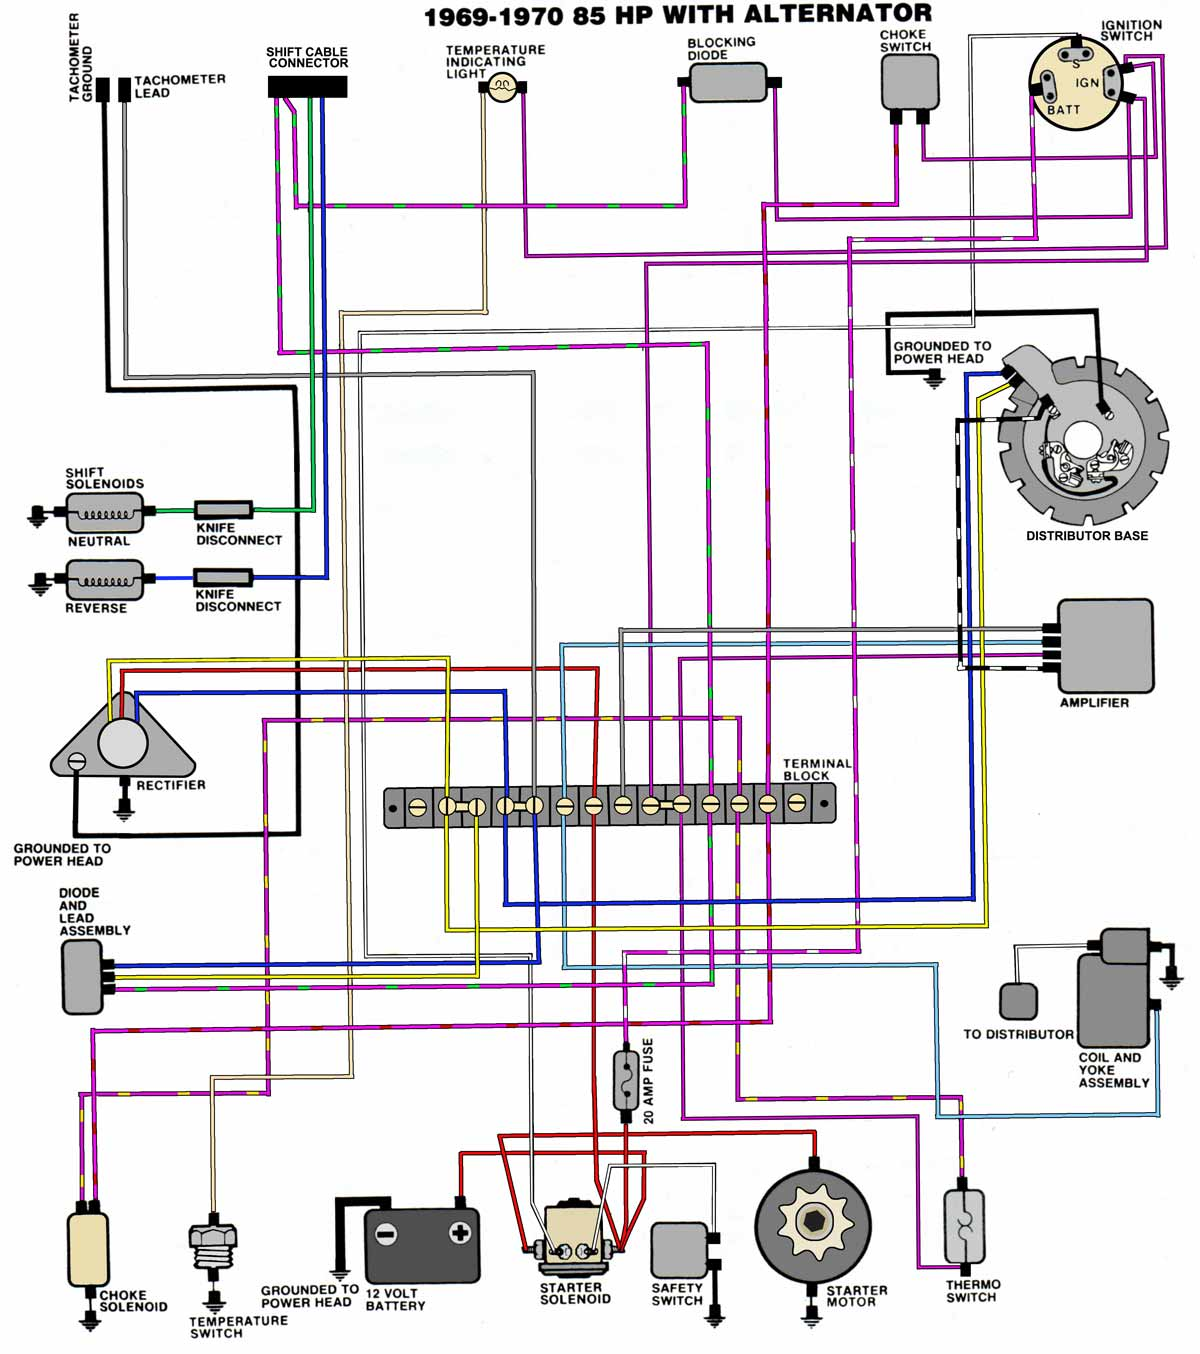 EVINRUDE JOHNSON Outboard Wiring Diagrams -- MASTERTECH MARINE -- on johnson 75 hp wiring diagram, johnson 100 hp wiring diagram, johnson 20 hp wiring diagram, johnson 70 hp wiring diagram, johnson 115 hp wiring diagram, johnson 50 hp wiring diagram, johnson 15 hp wiring diagram, johnson 40 hp wiring diagram, johnson 25 hp wiring diagram, johnson 90 hp wiring diagram, johnson 60 hp wiring diagram, johnson 28 hp wiring diagram, johnson 55 hp wiring diagram,